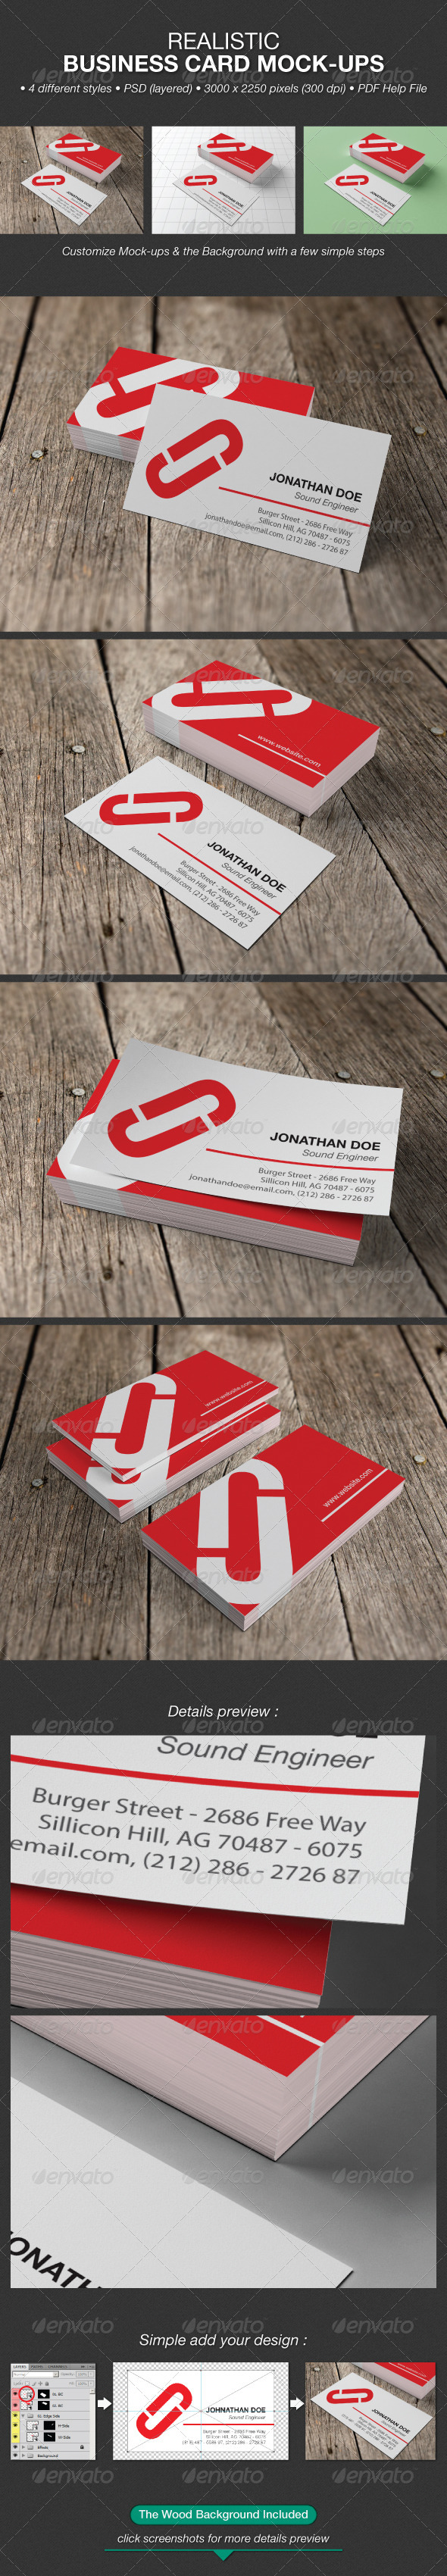 Realistic Business Card Mock-Ups - Business Cards Print